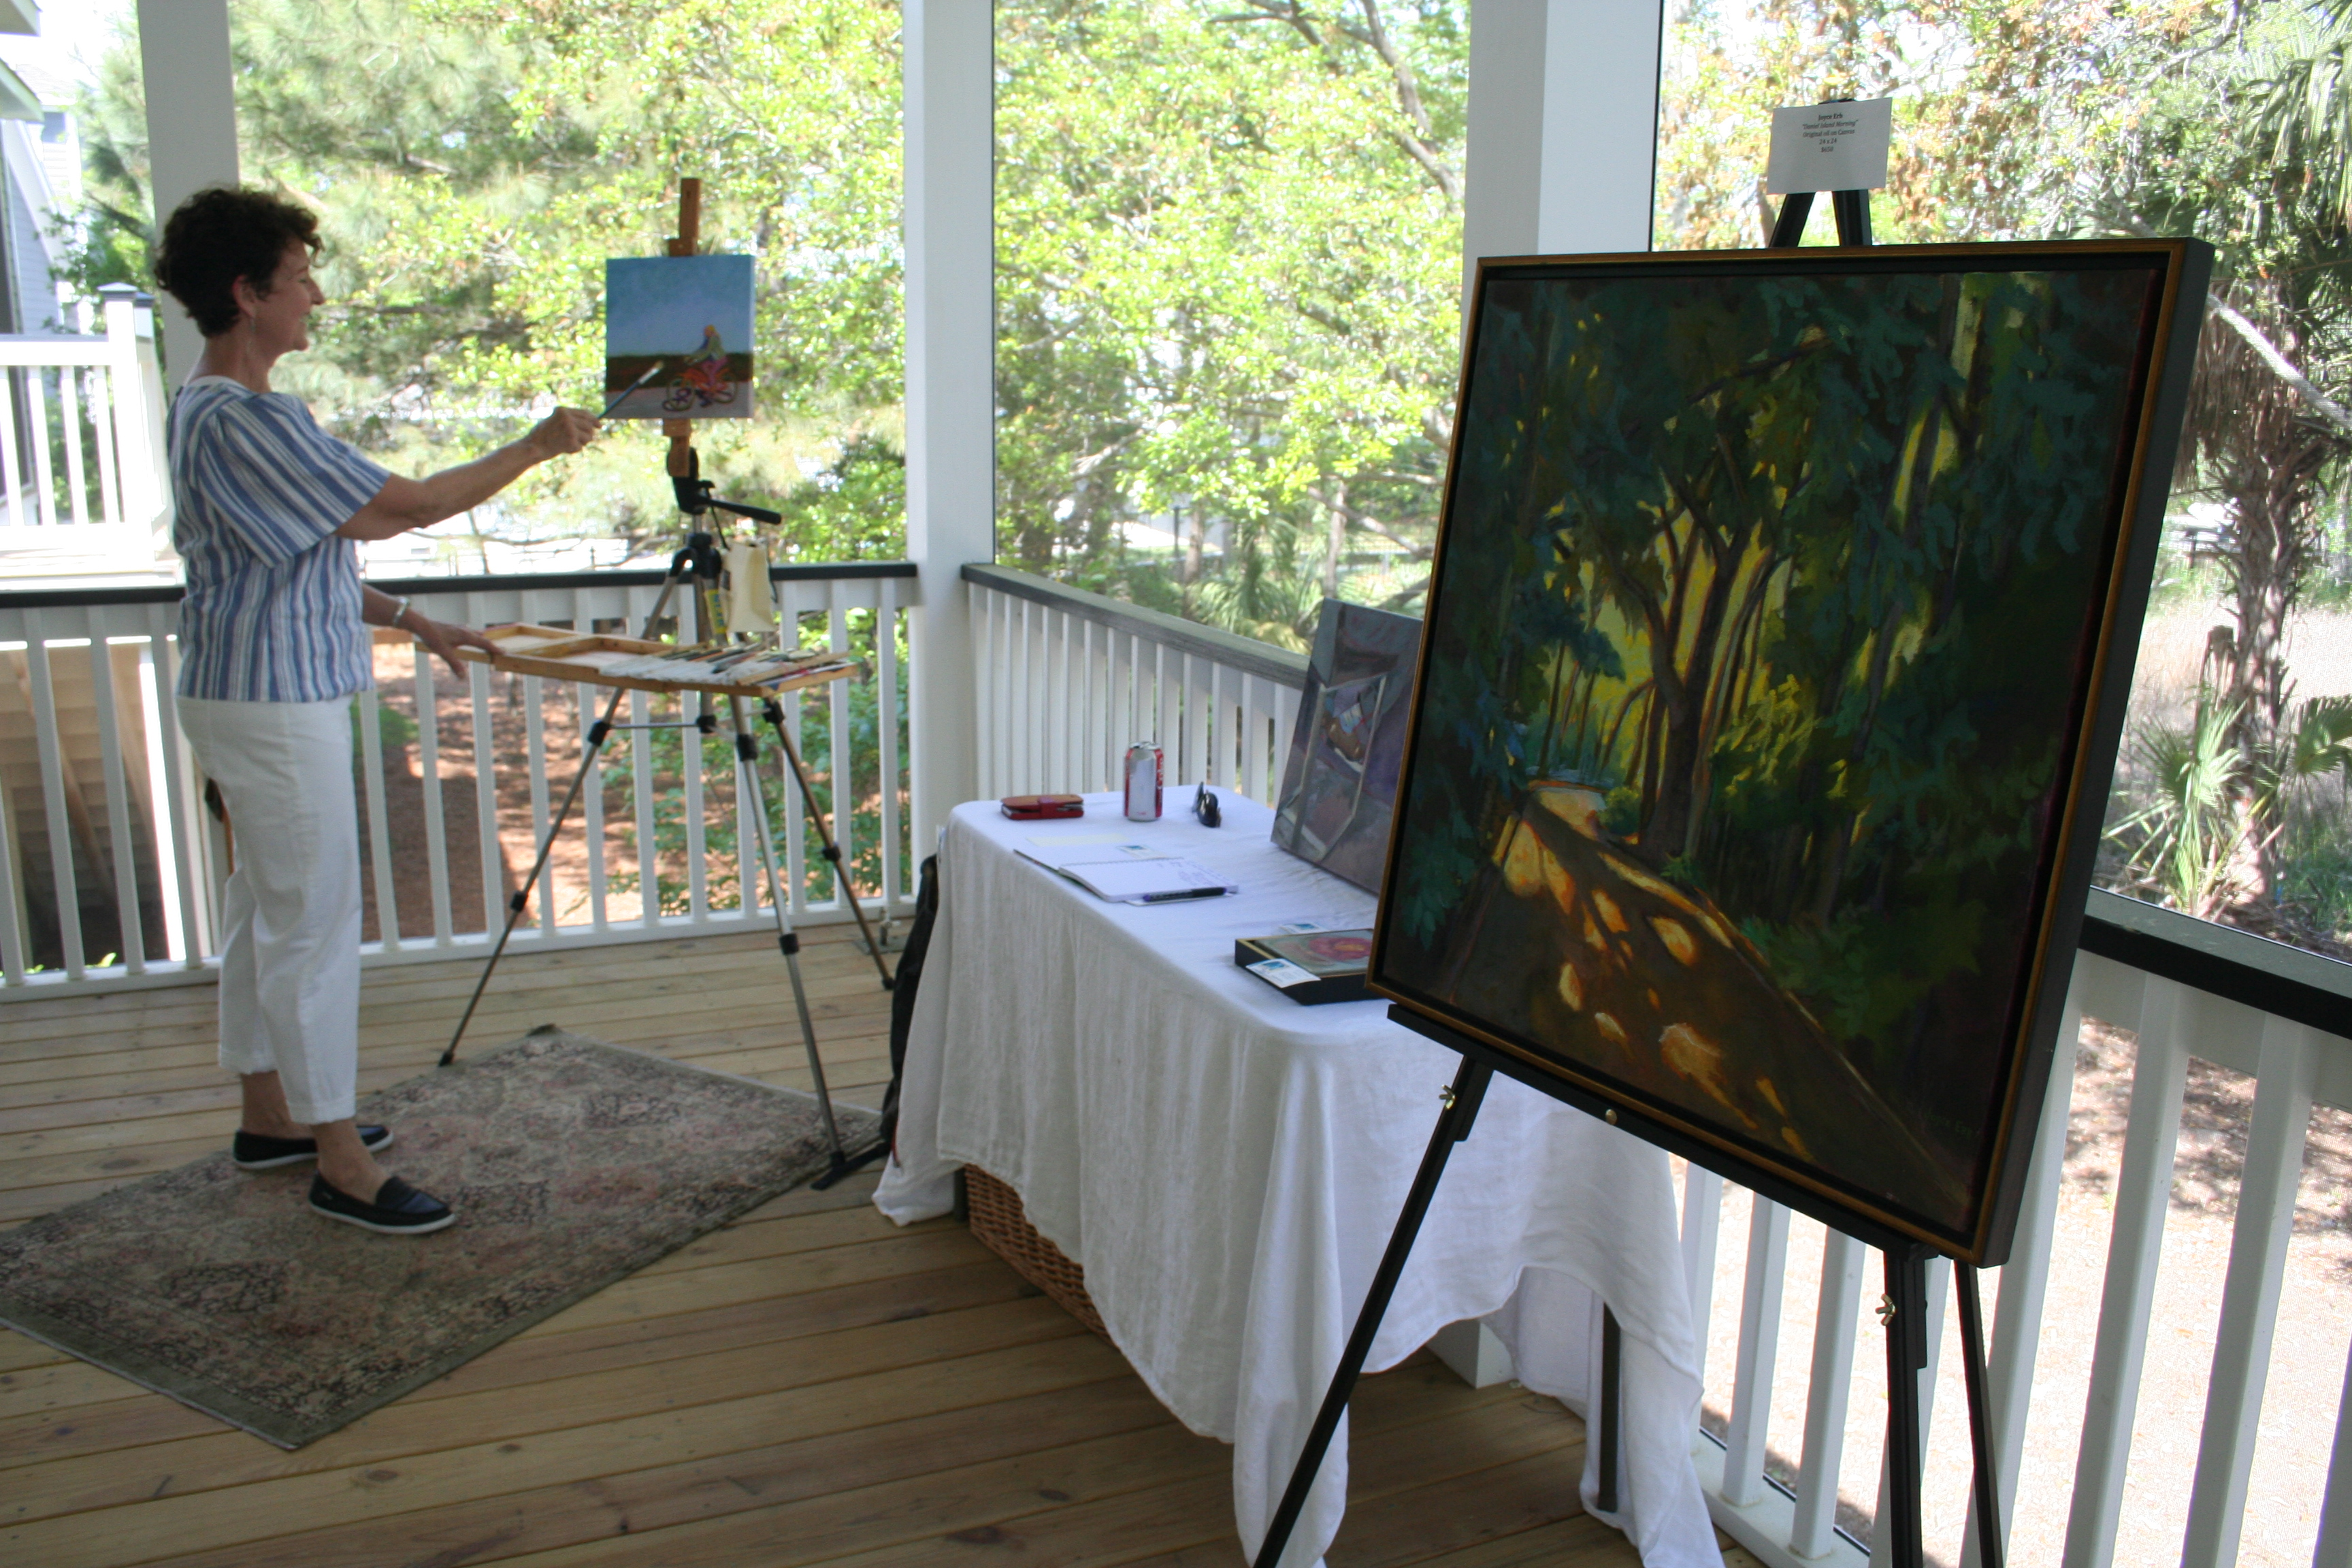 Scenes from the beautiful outdoors often serve as inspiration for artist Joyce Erb, who is shown here working on a piece on the back porch of the property.